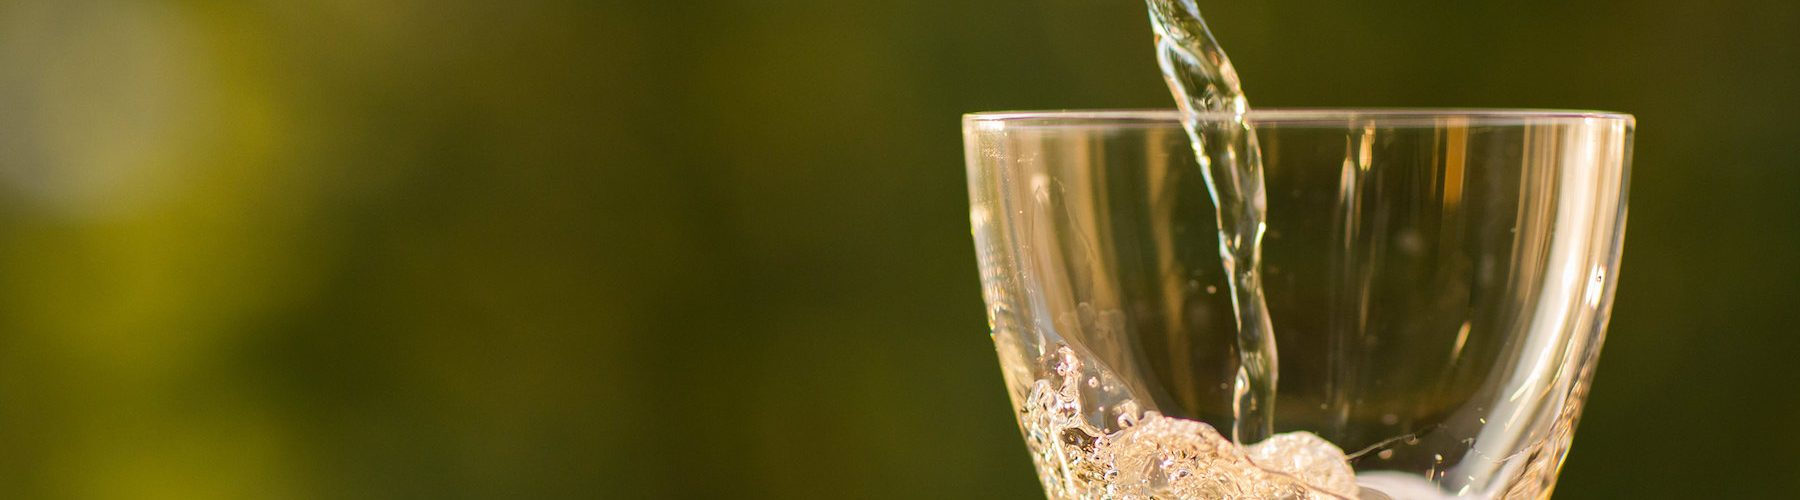 New Years Sips: The Best Bubbliest Champagne Cocktails